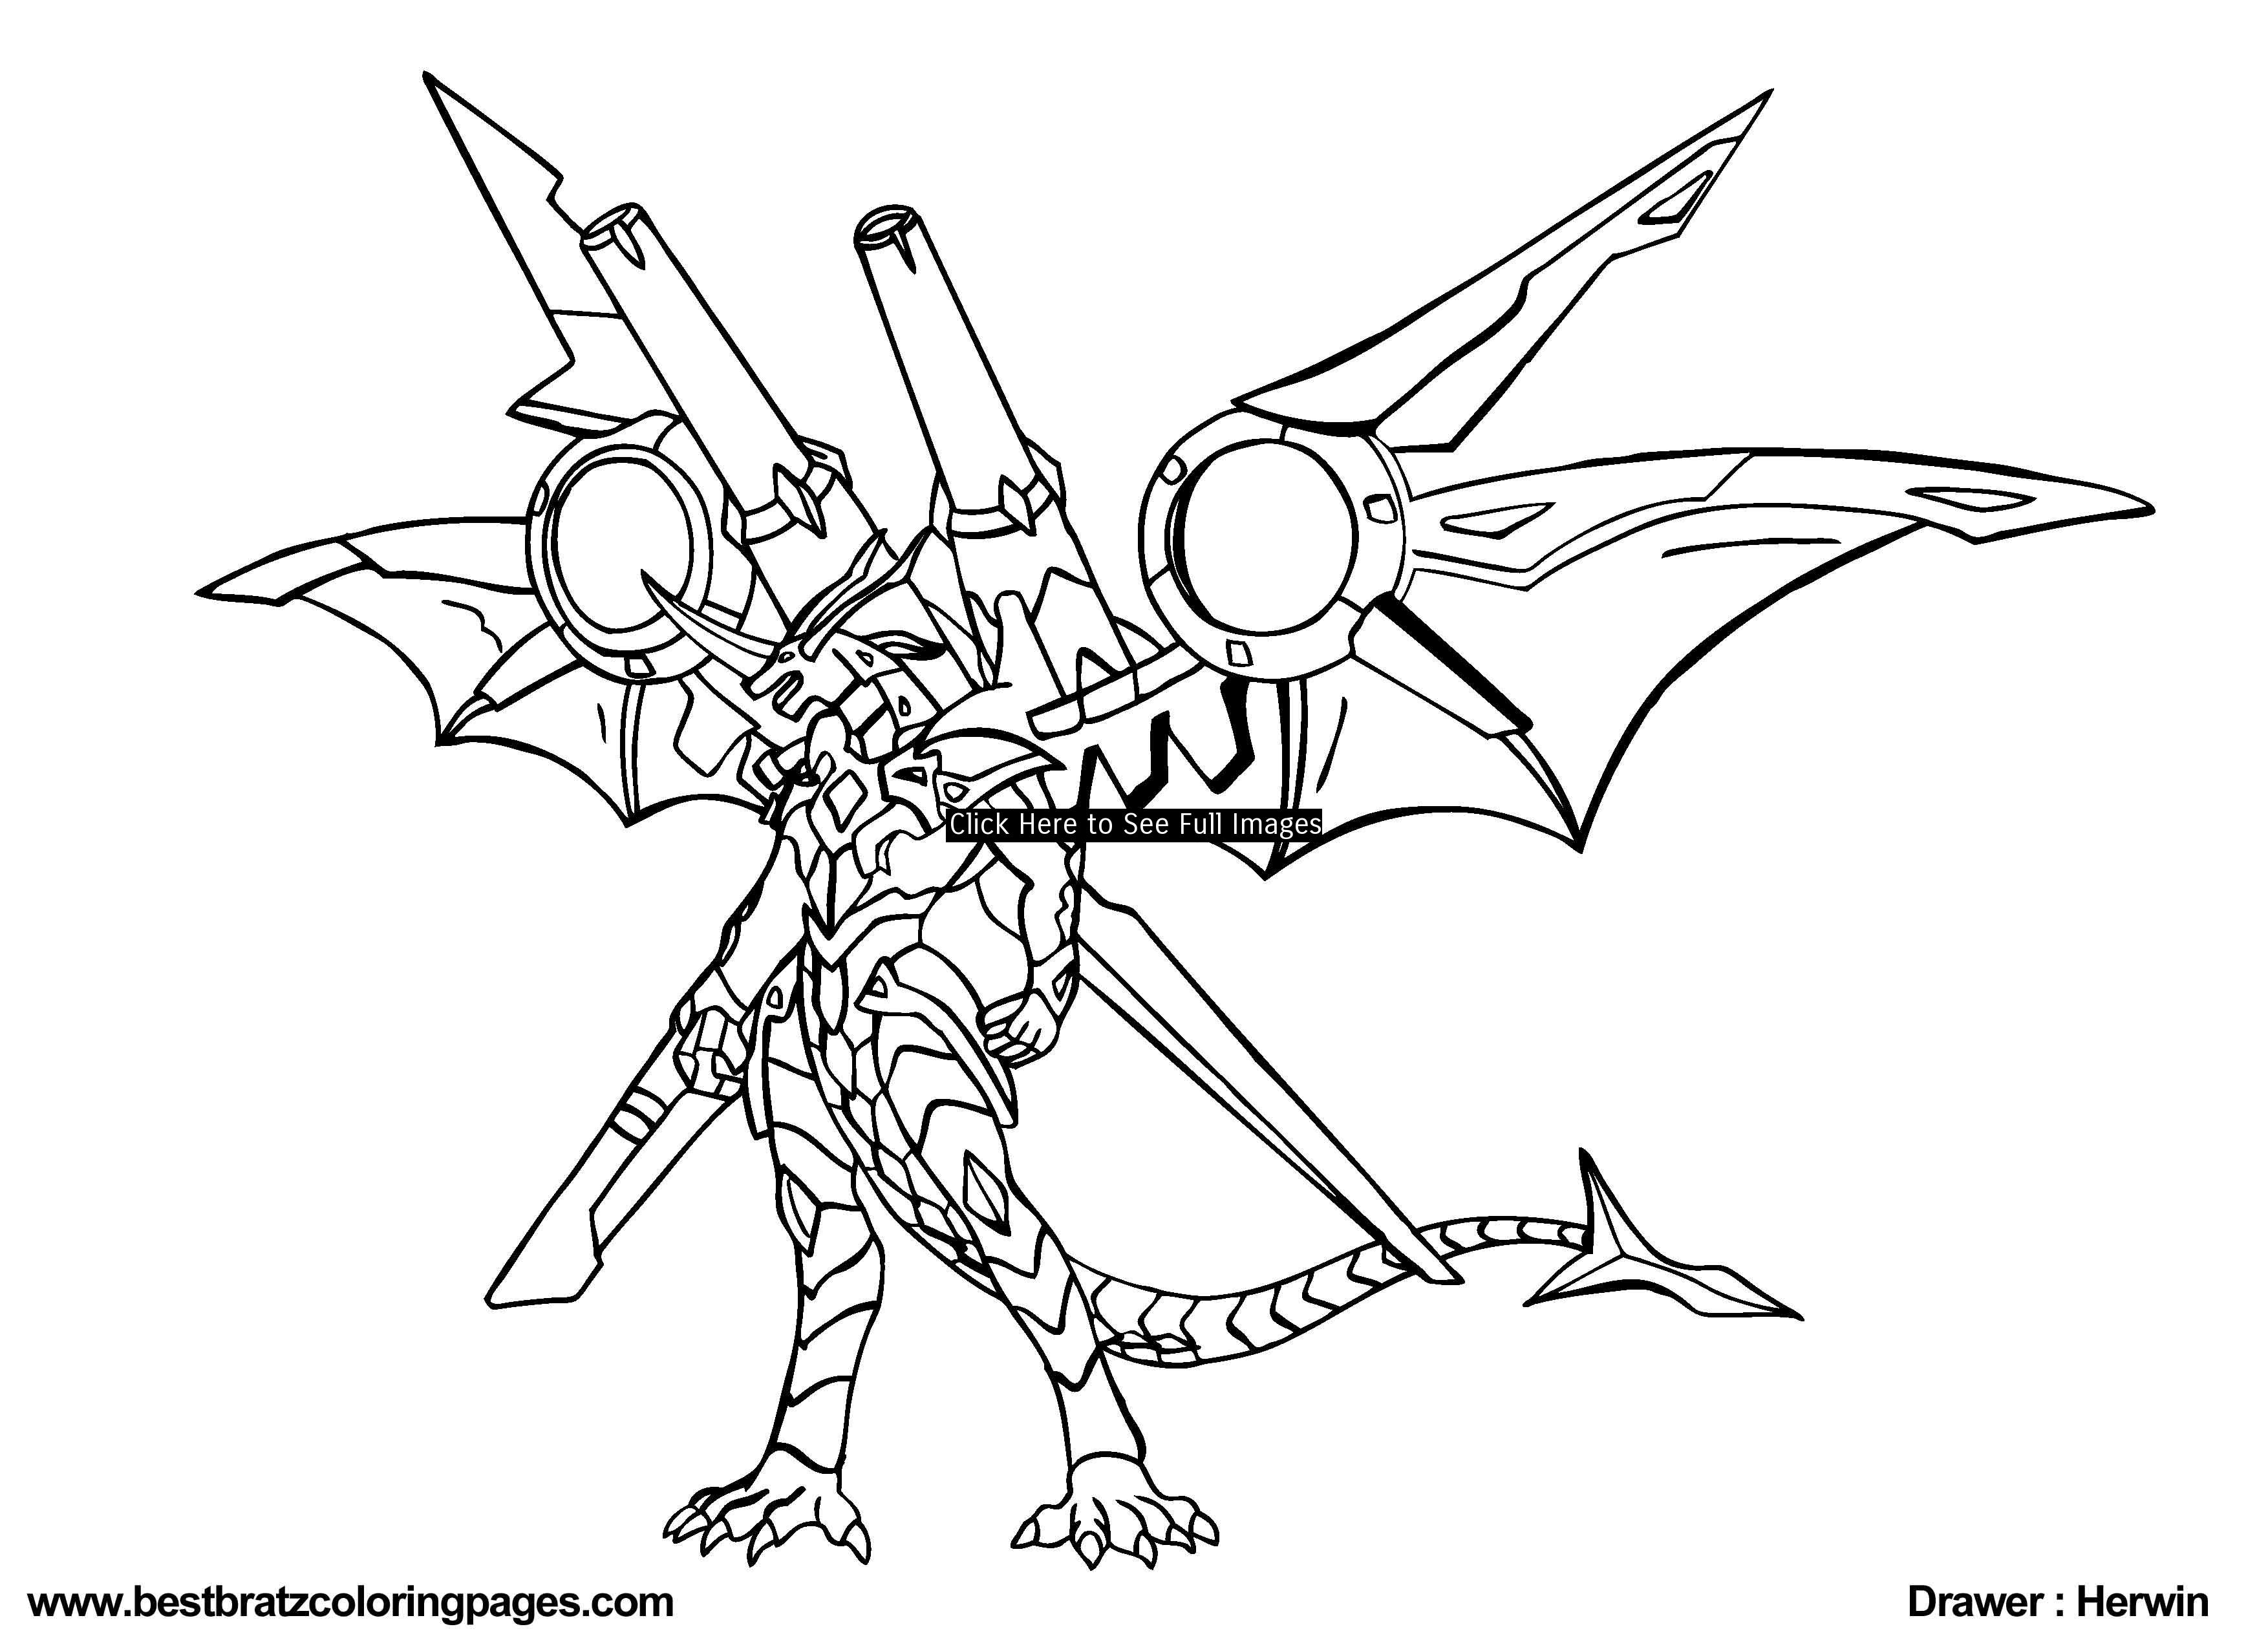 bakugan coloring sheet bakugan gundalian invaders coloring page coloring pages sheet bakugan coloring